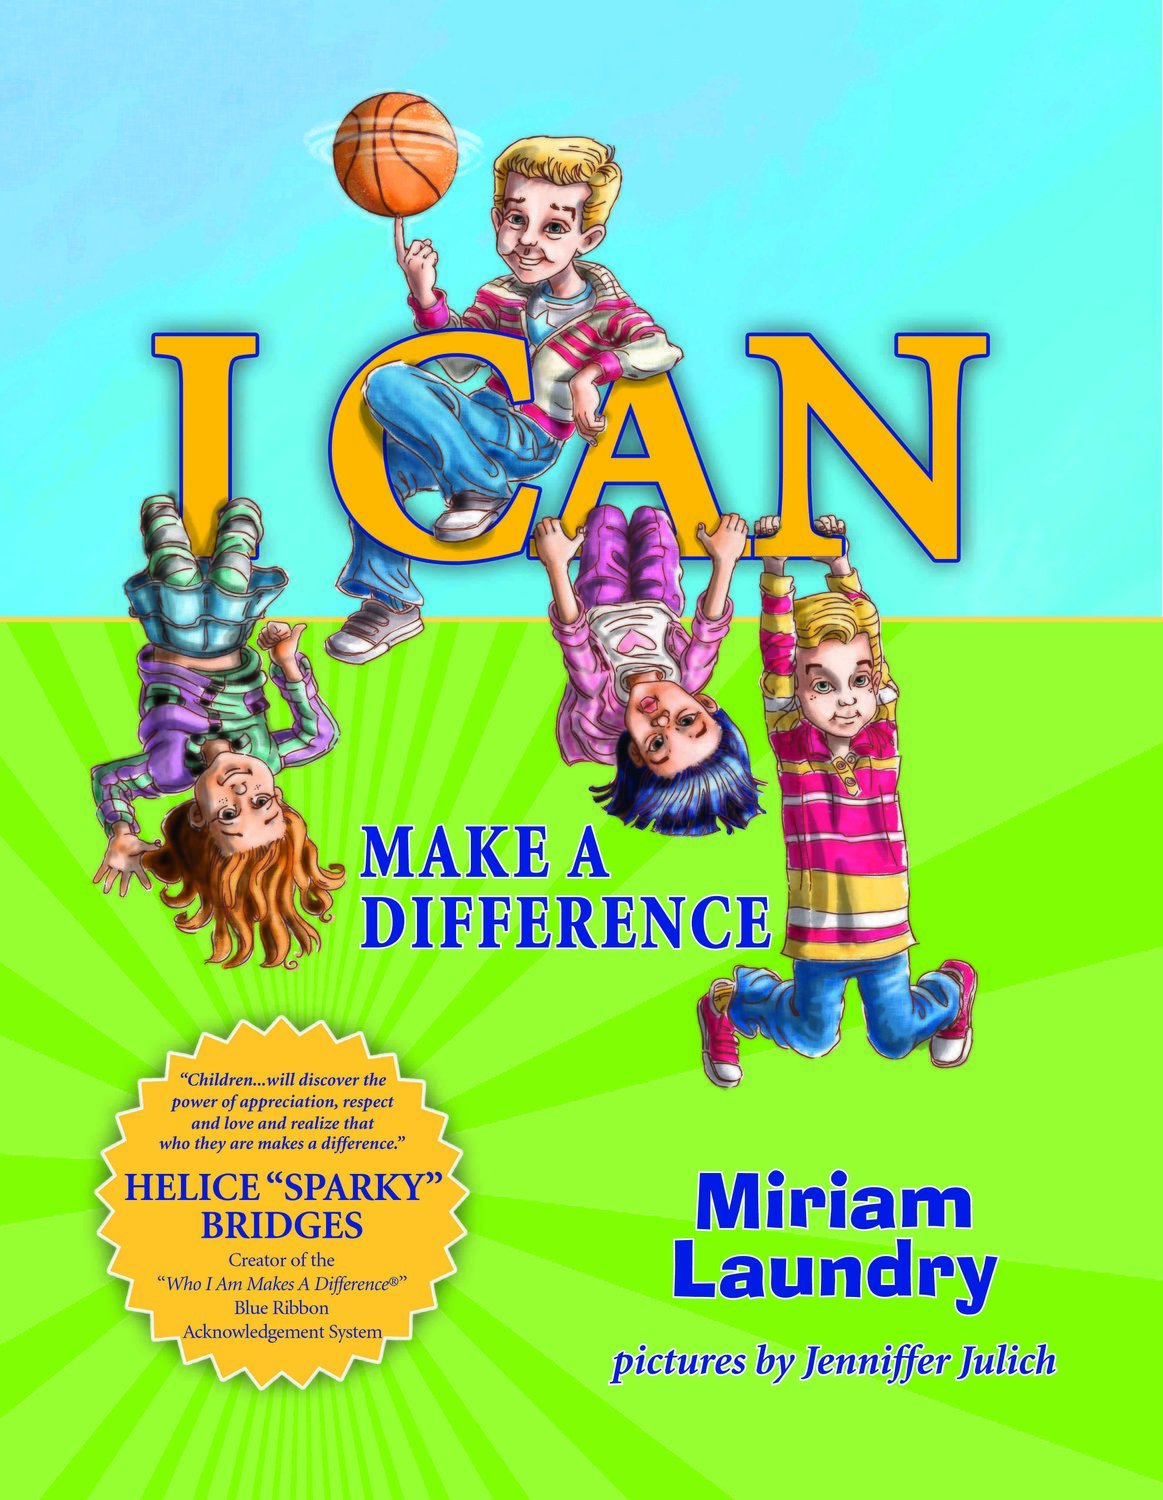 PDF - I CAN Make a Difference